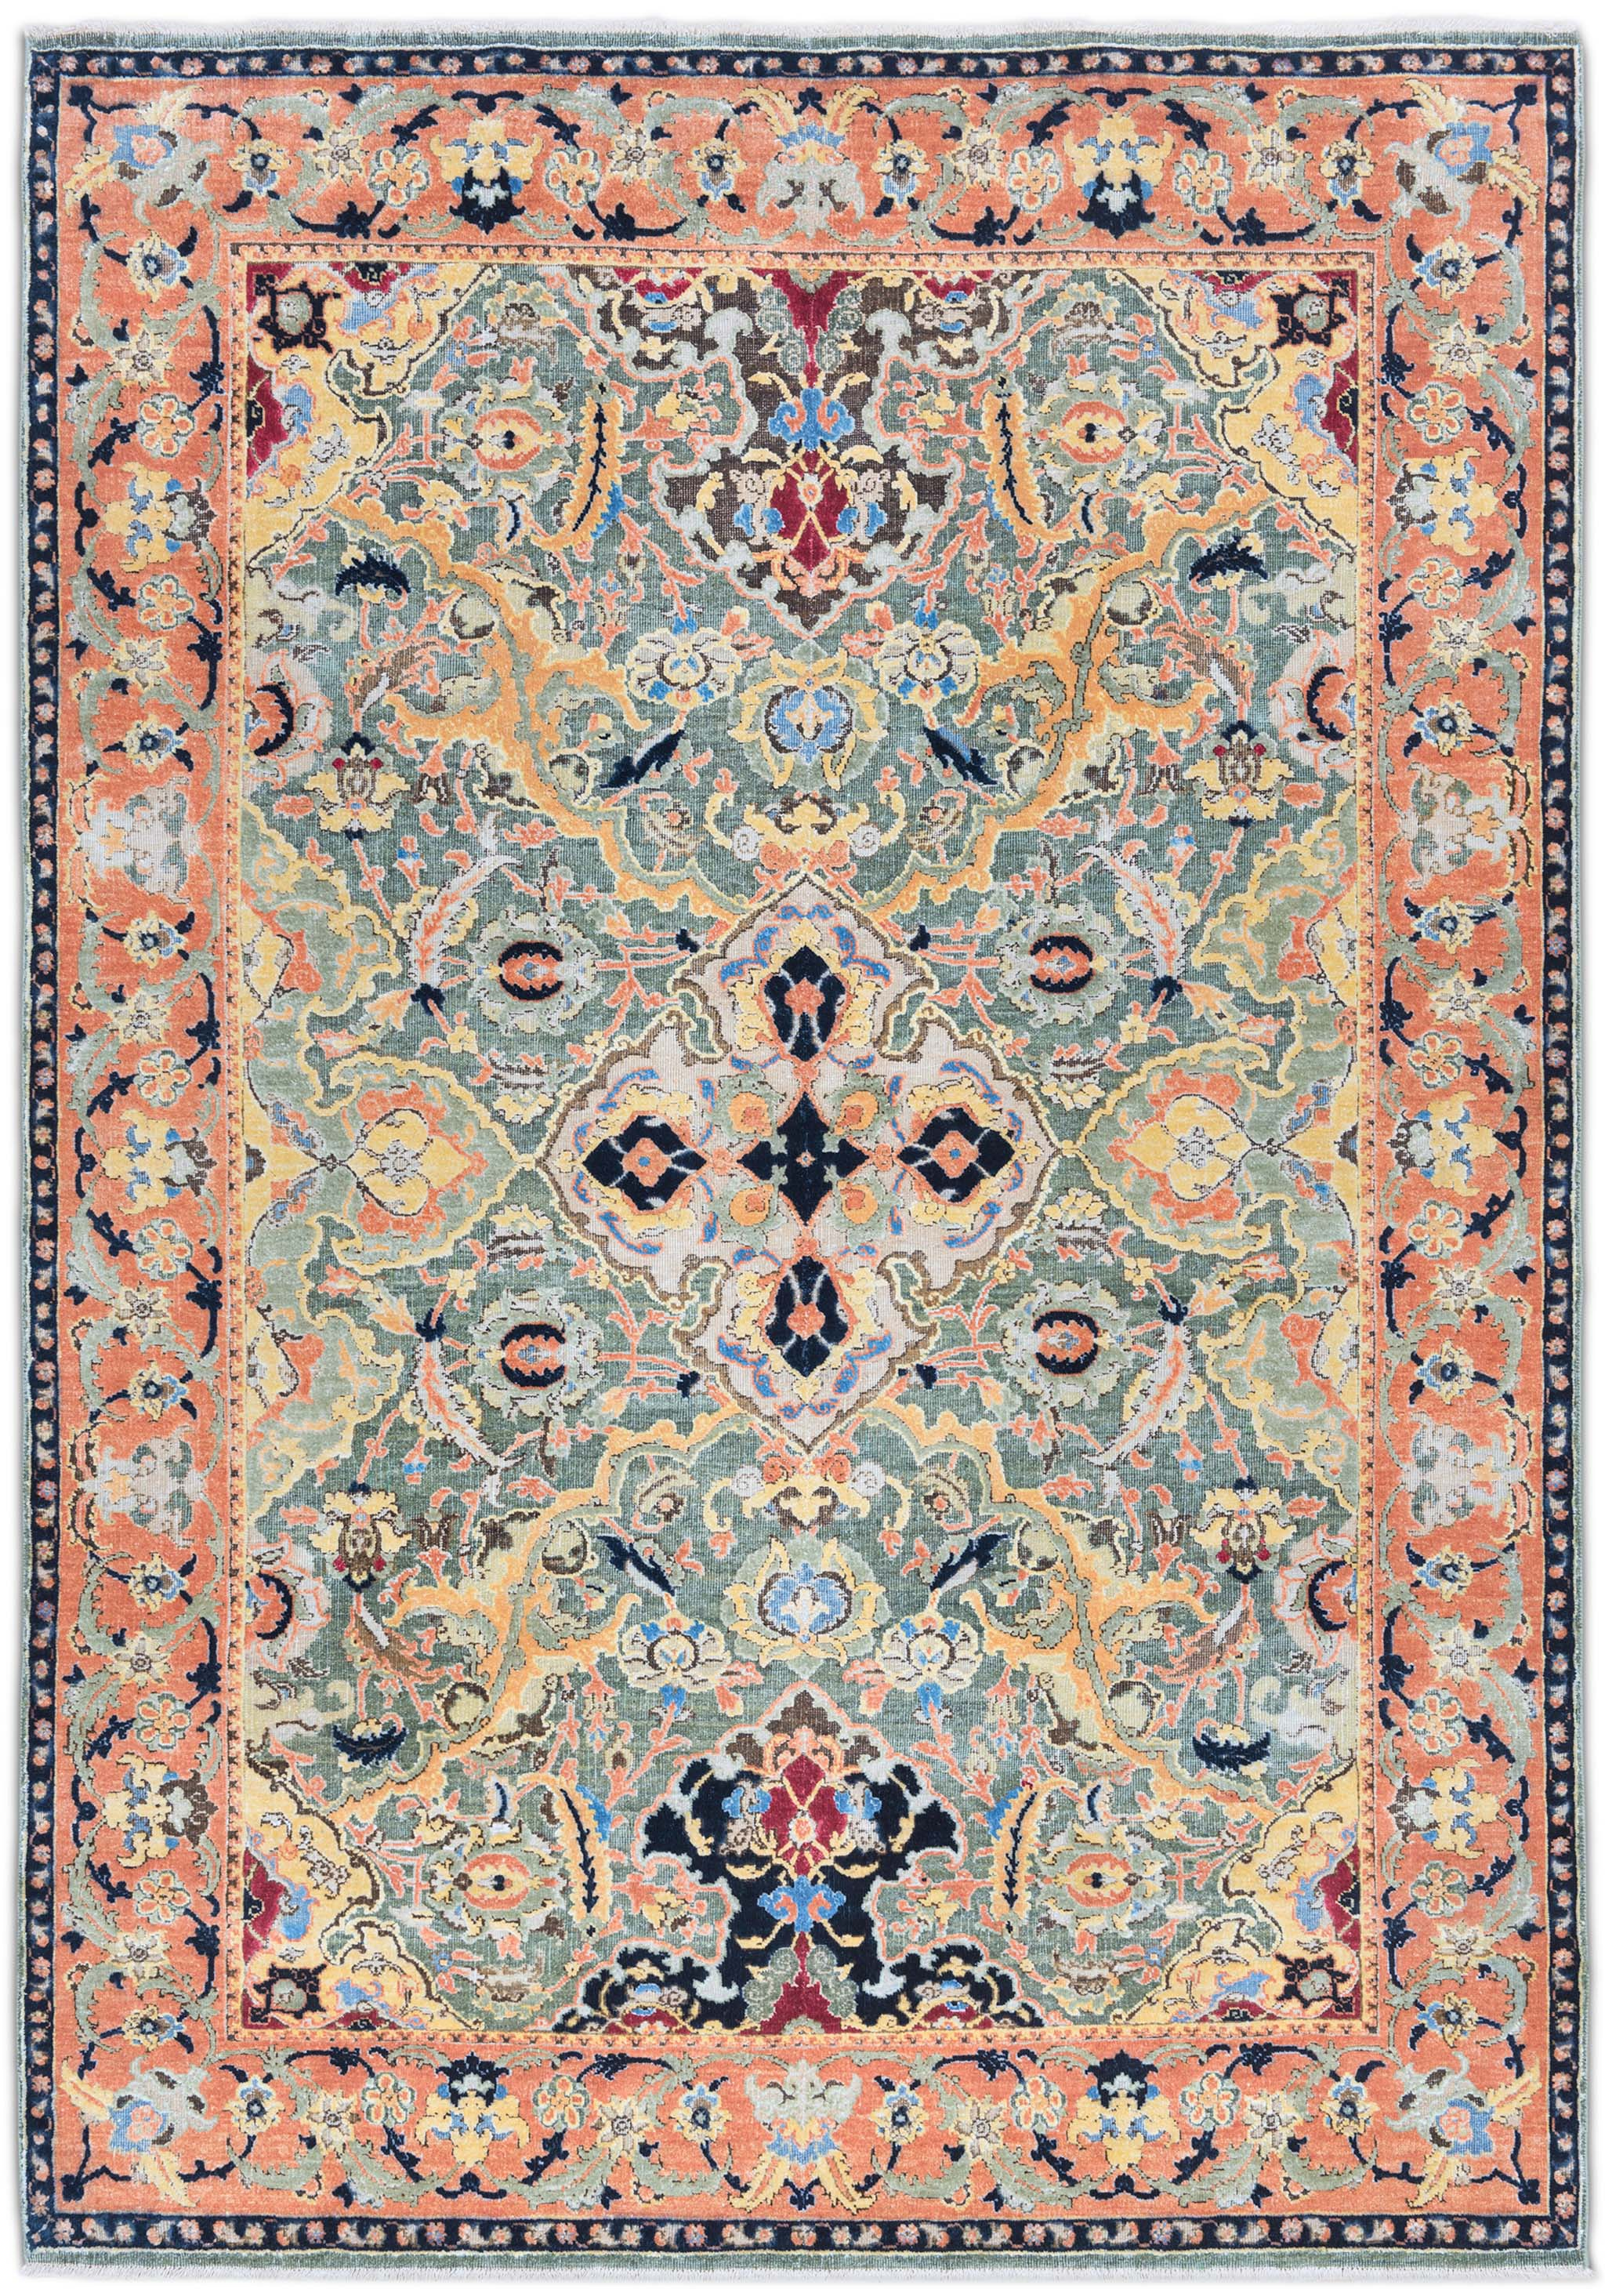 'Polonaise No. 3' by Knots Rugs from the firm's 17th Century Classic Collection, introduced in 2016. | Image courtesy of Knots Rugs.